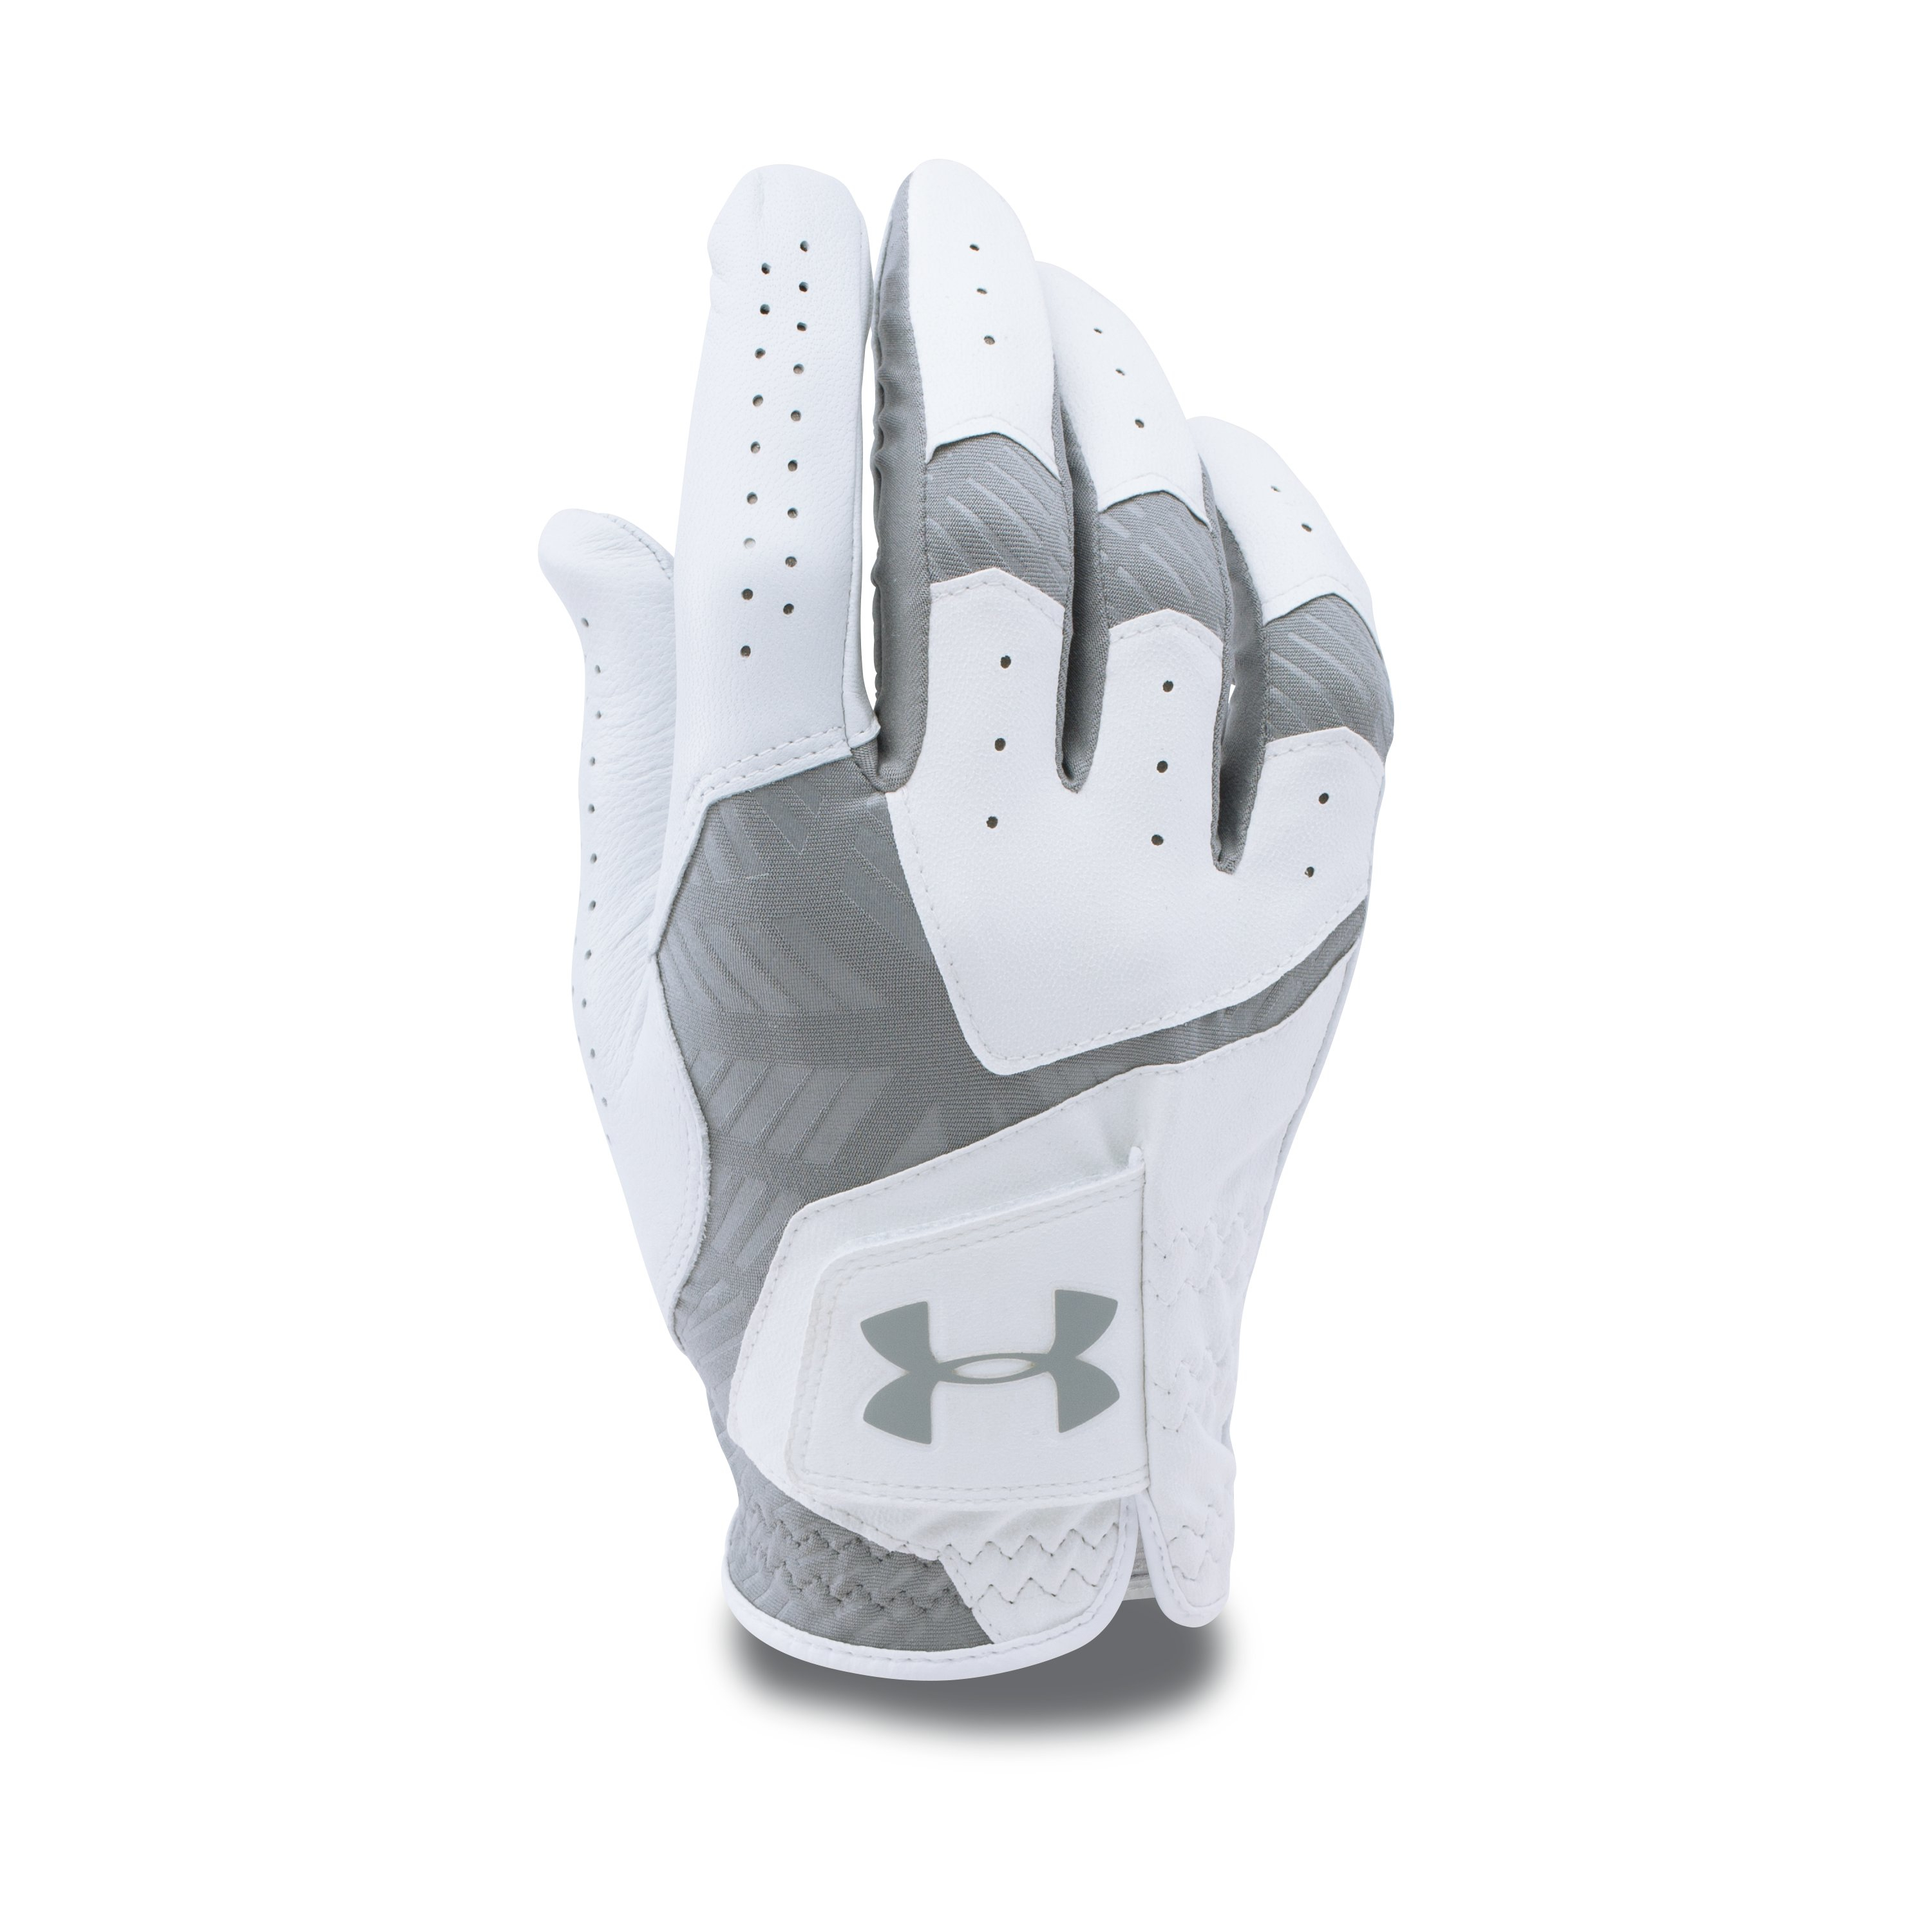 Under Armour Men S Ua Coolswitch Golf Glove In White For